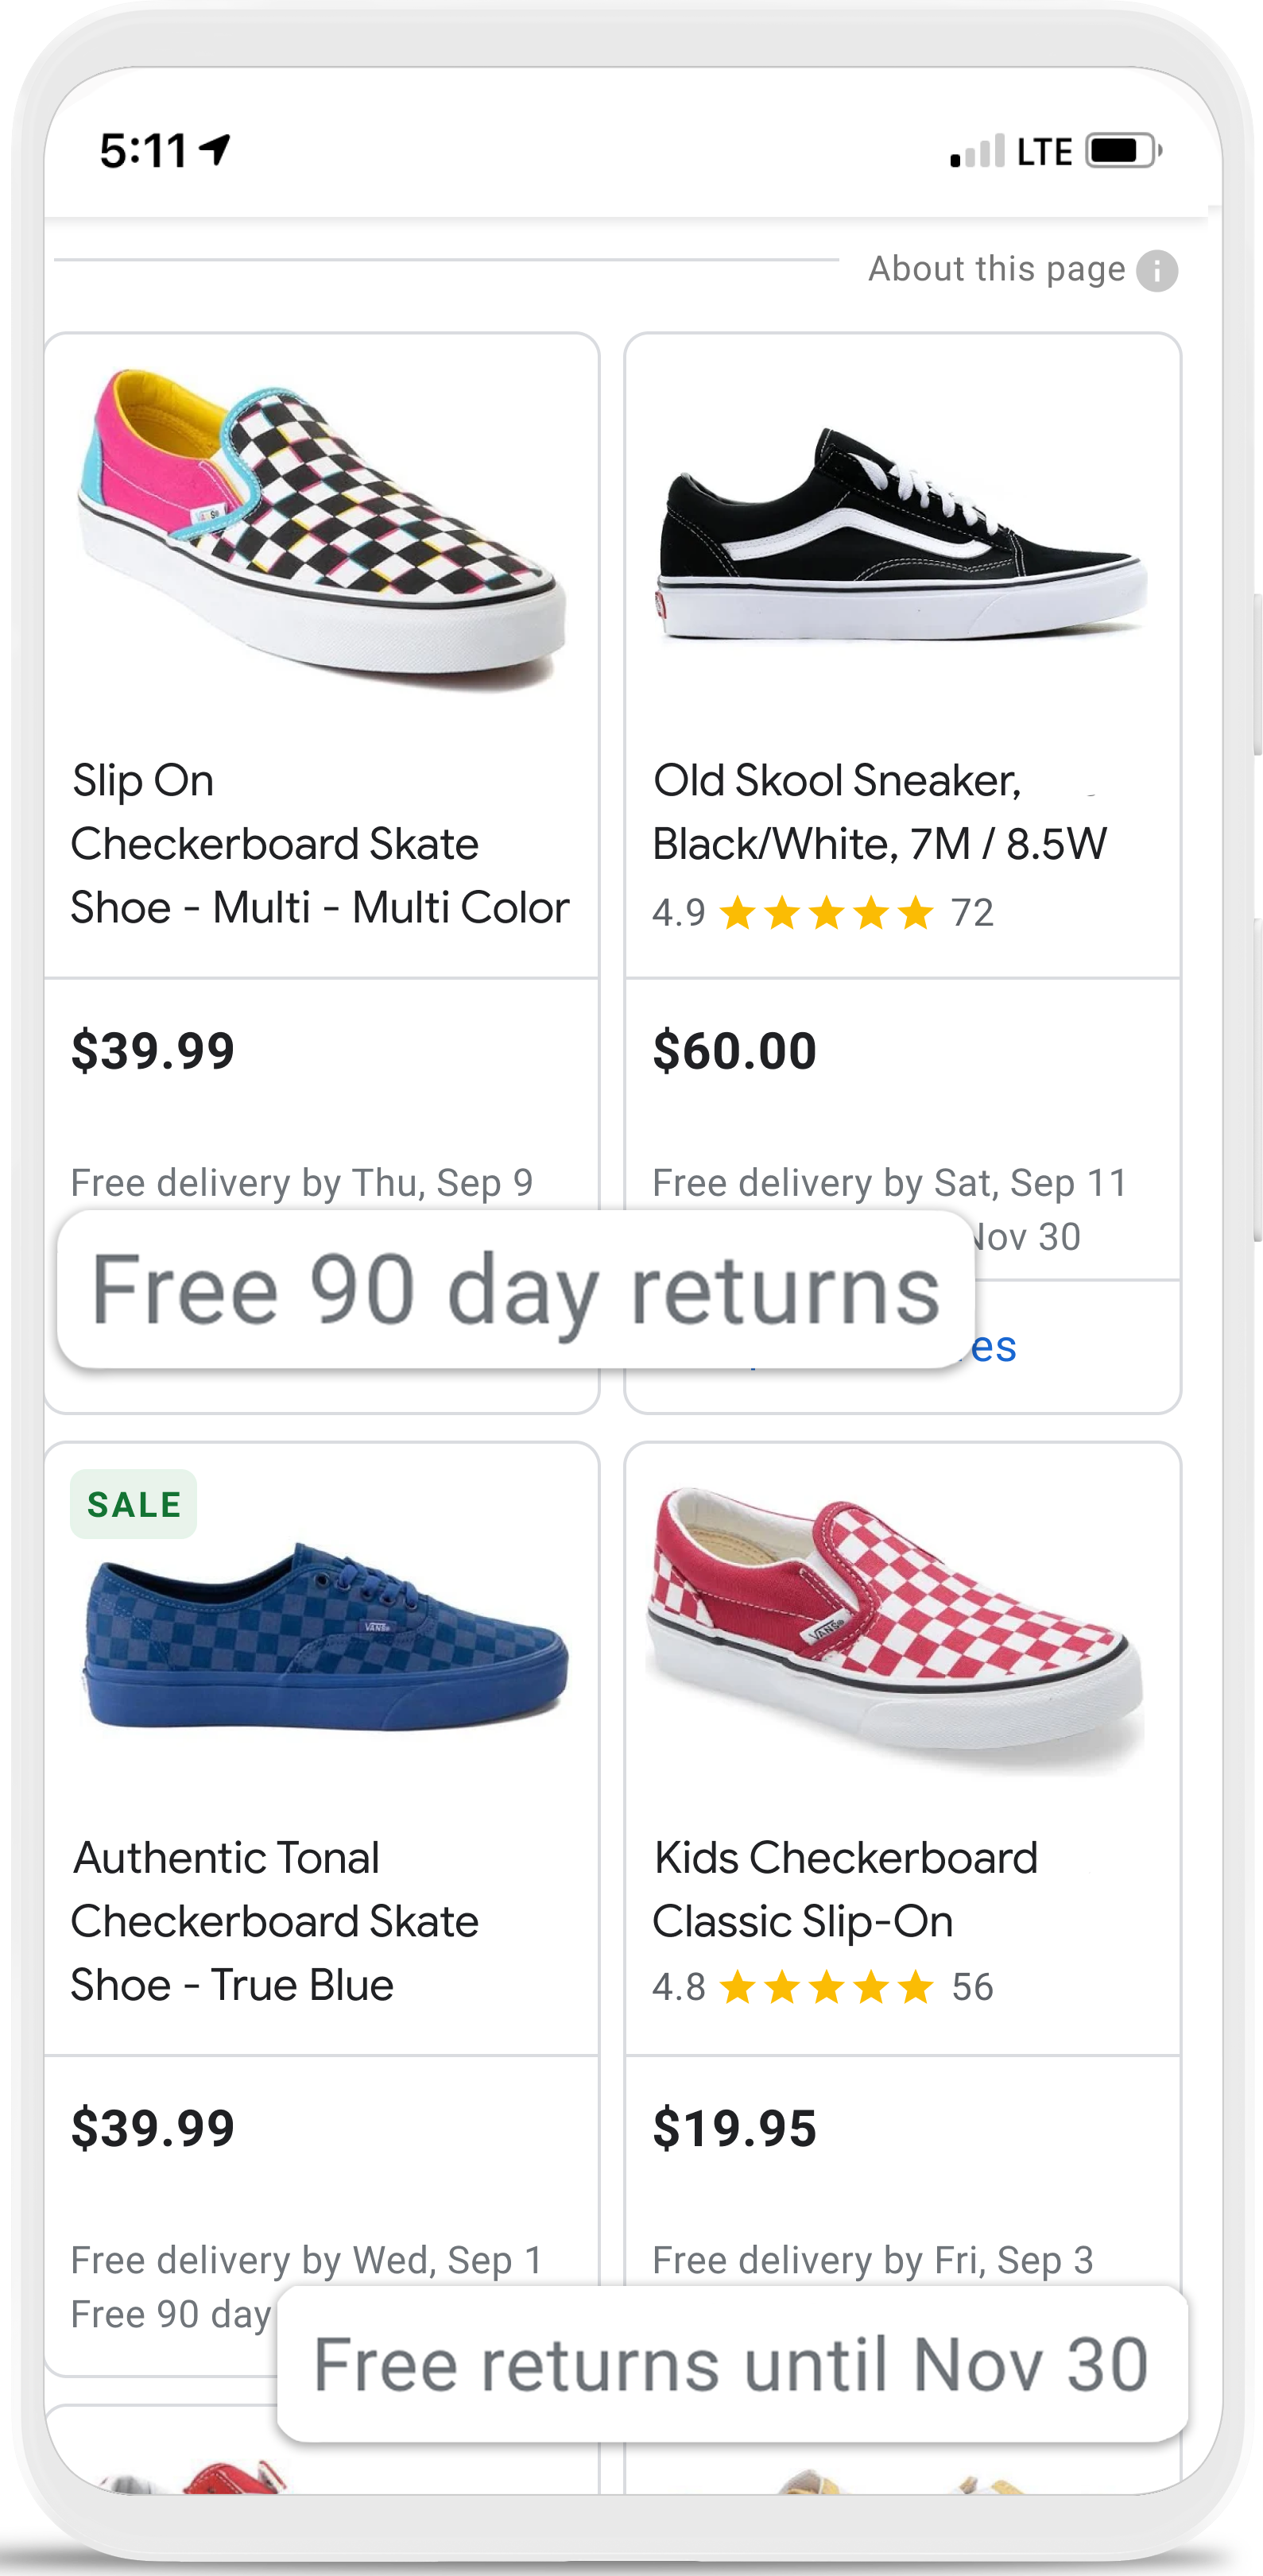 return policy directly in your ads